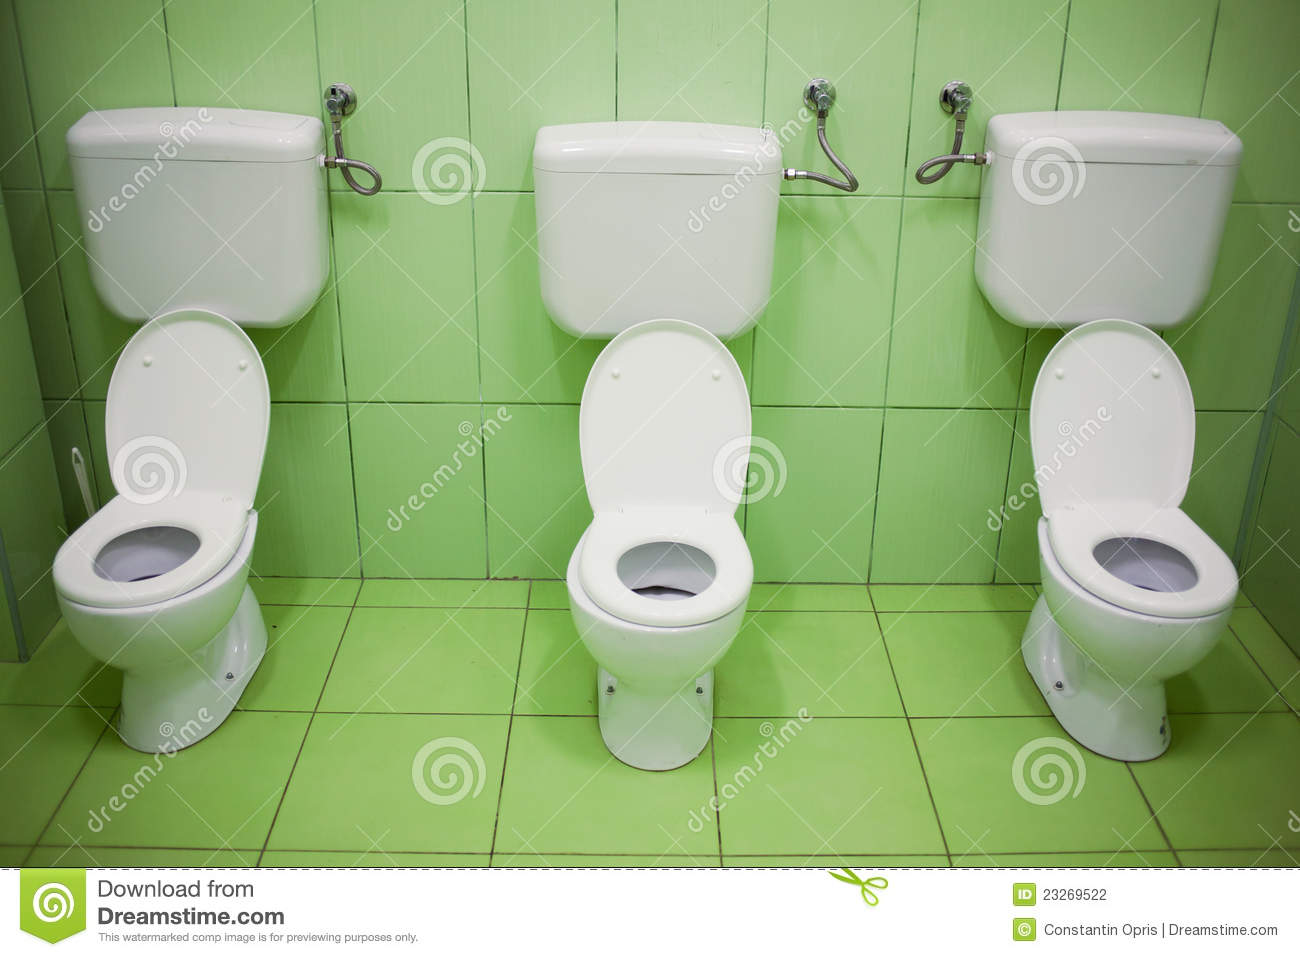 Nature bathroom design - Toilet Seats In Kindergarten Stock Photography Image